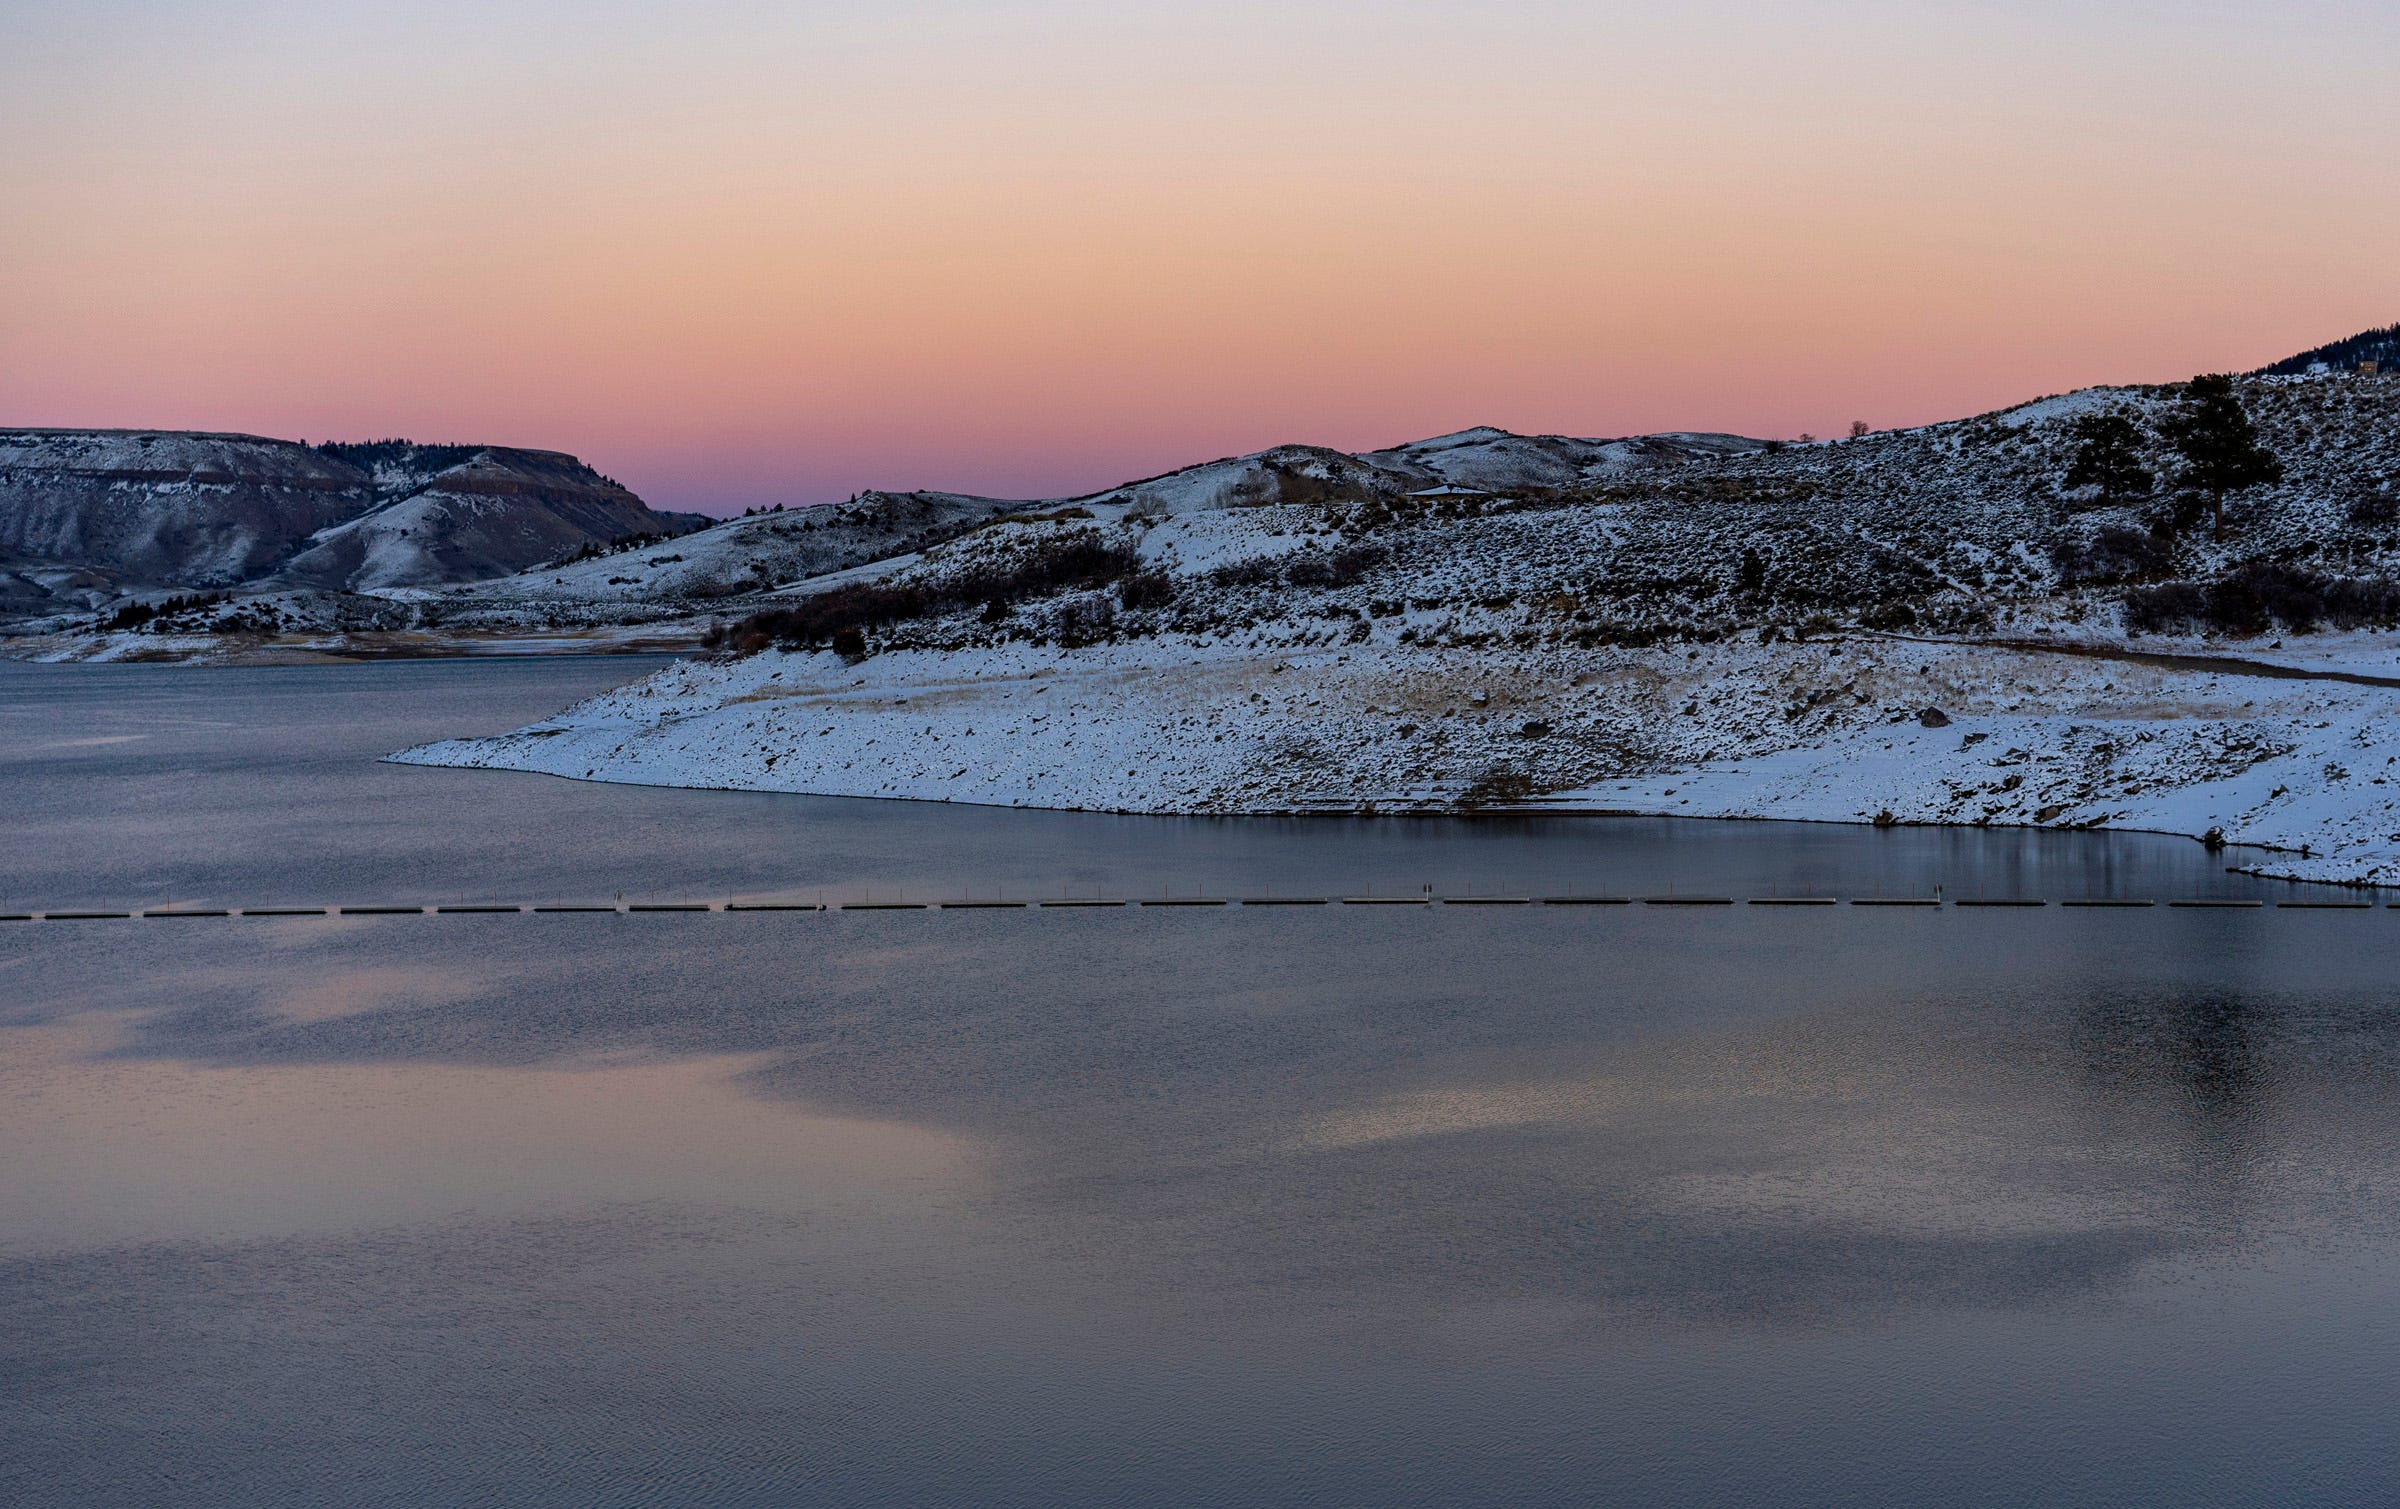 Blue Mesa Reservoir holds water from the Gunnison River, a tributary of the Colorado River. The reservoir has declined to 48% of its full capacity.